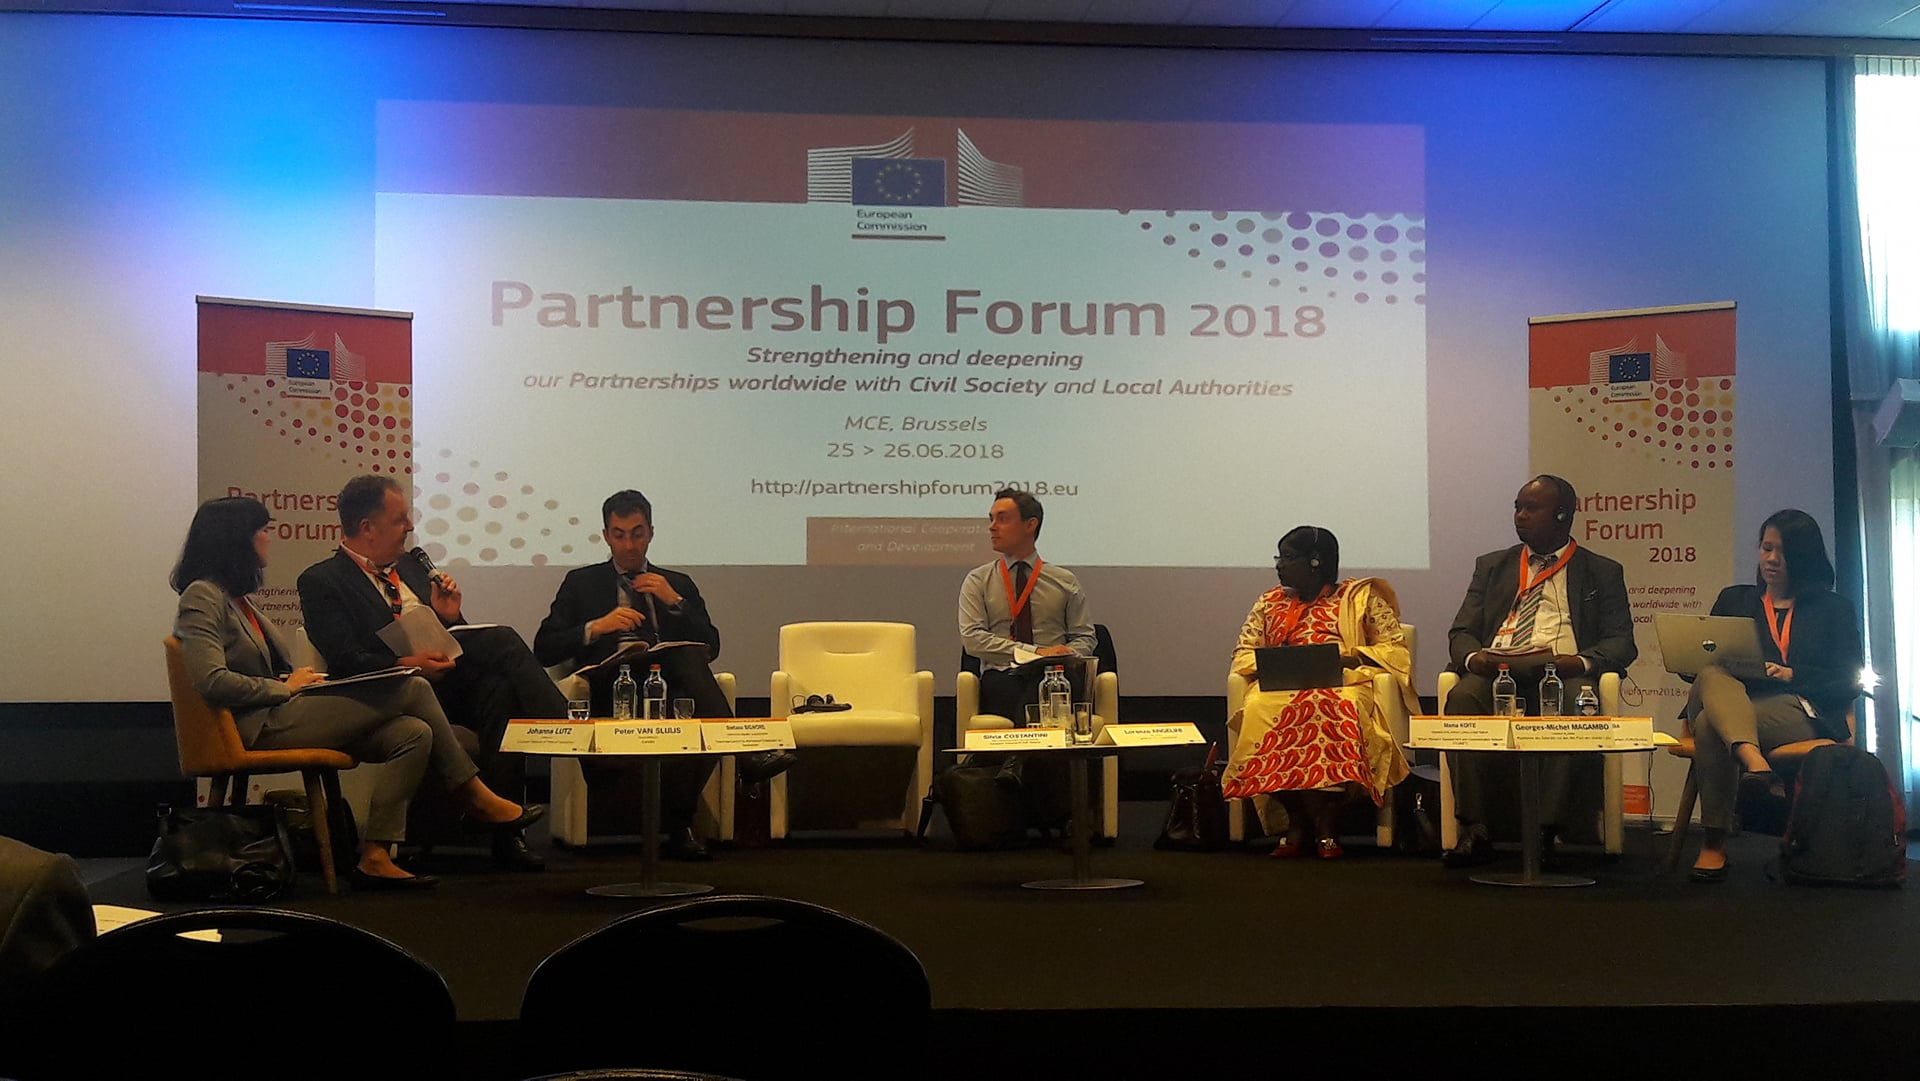 partnershipforum2